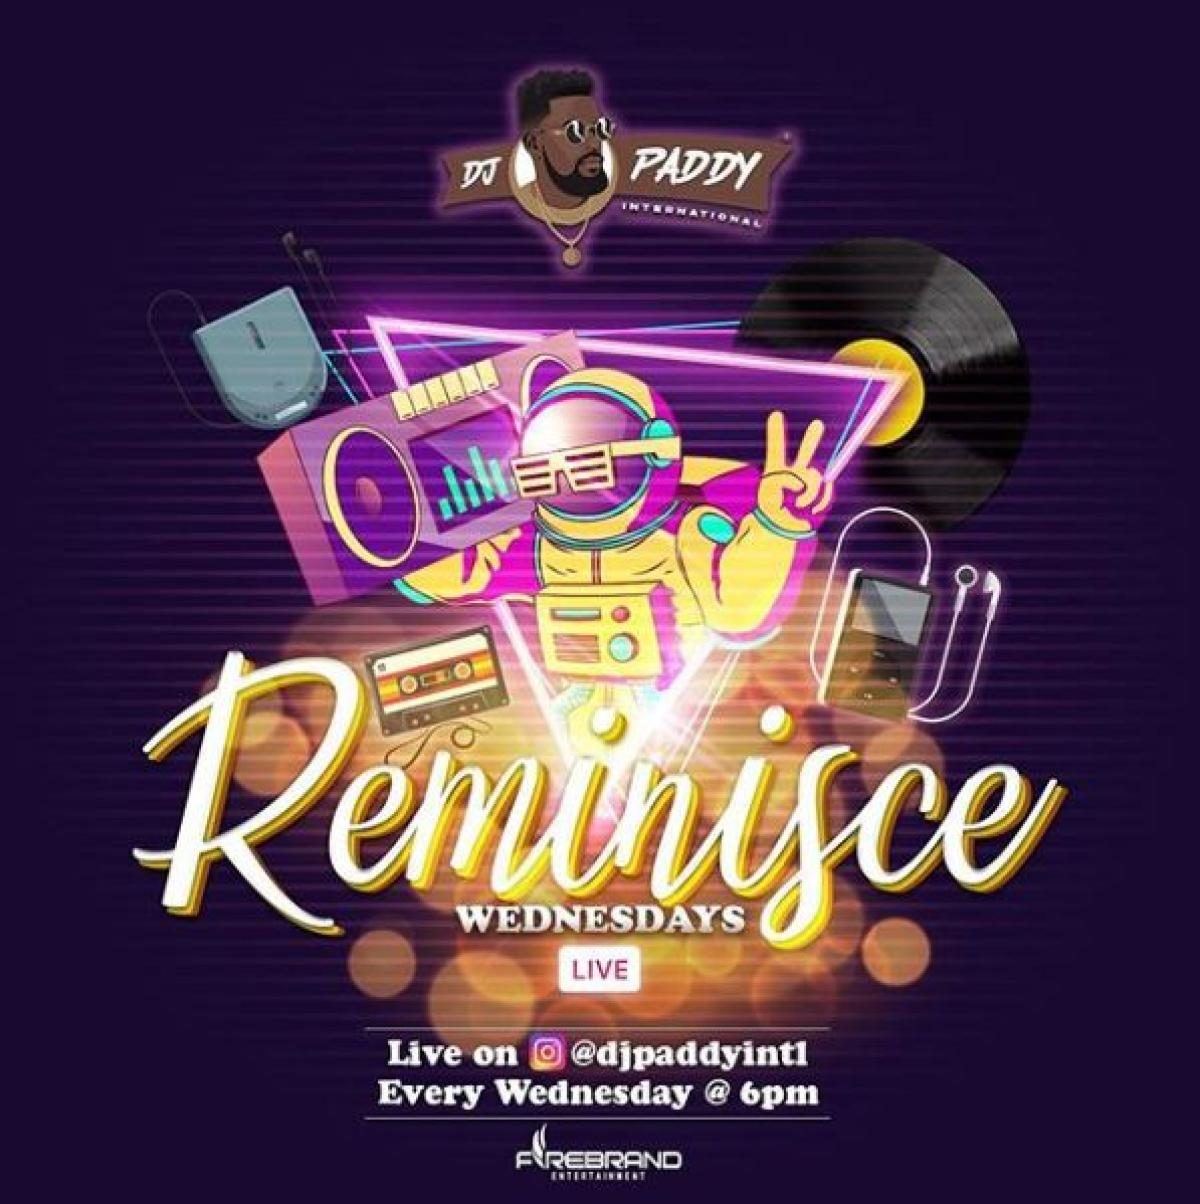 Reminisce Wednesdays flyer or graphic.